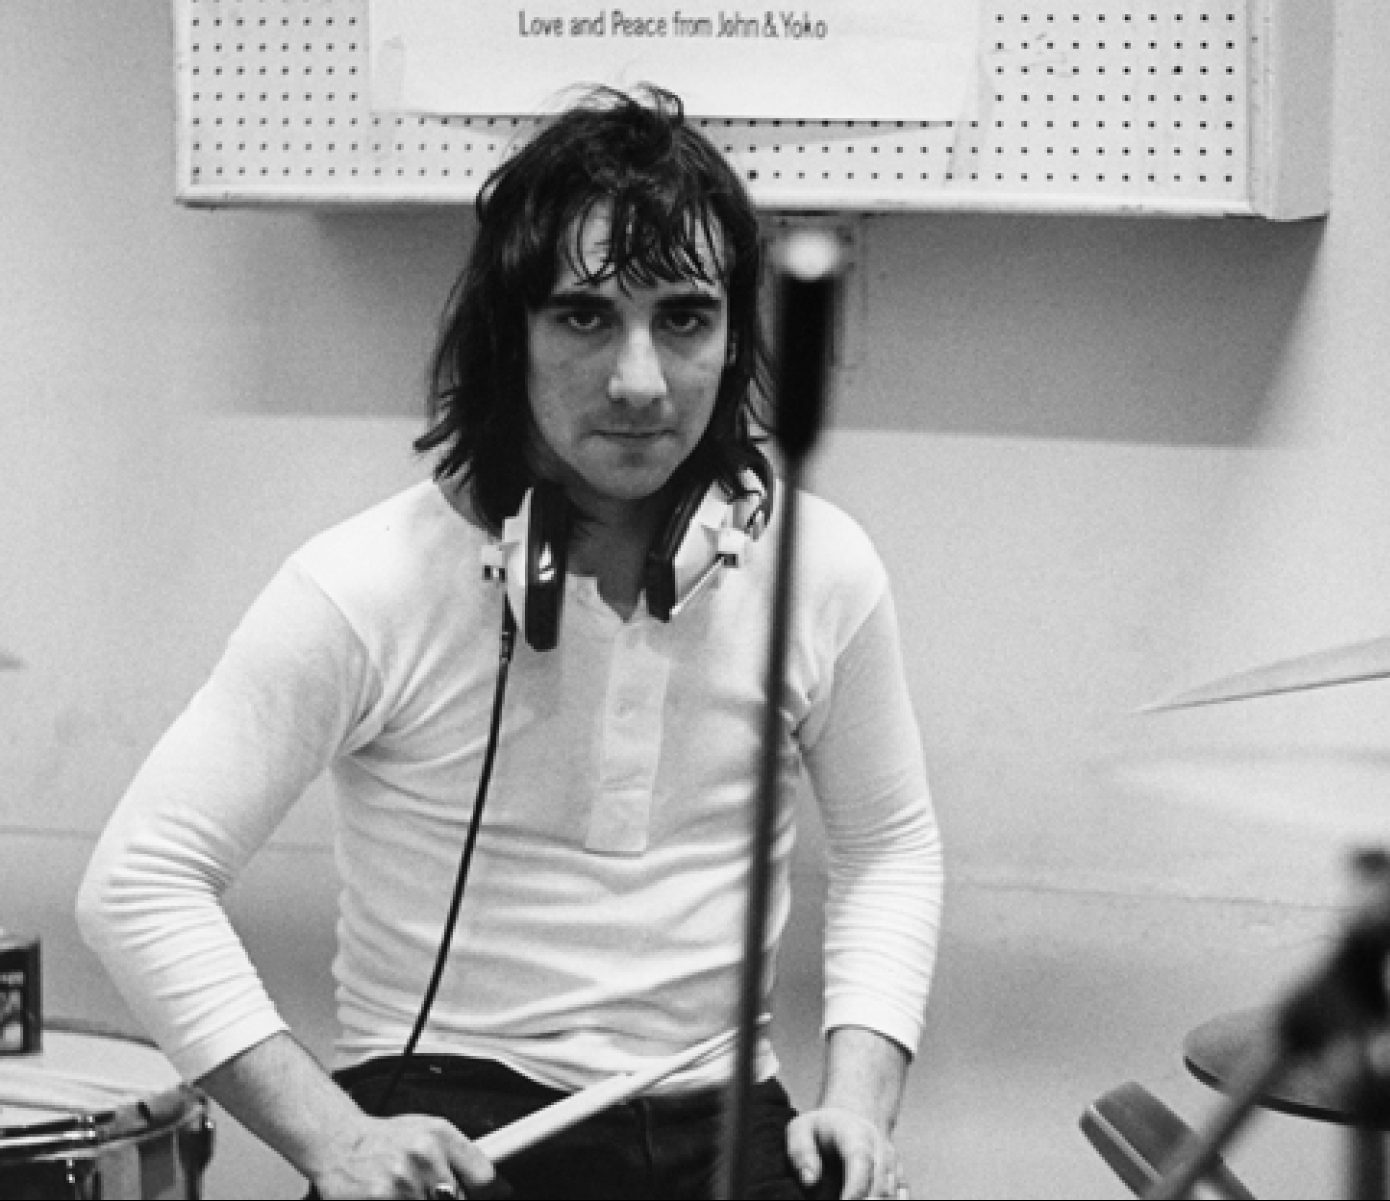 rs 9582 20130224 thewho keithmoon thumb 624x420 1361756291 e1614858030698 20 Things You Never Knew About The Who